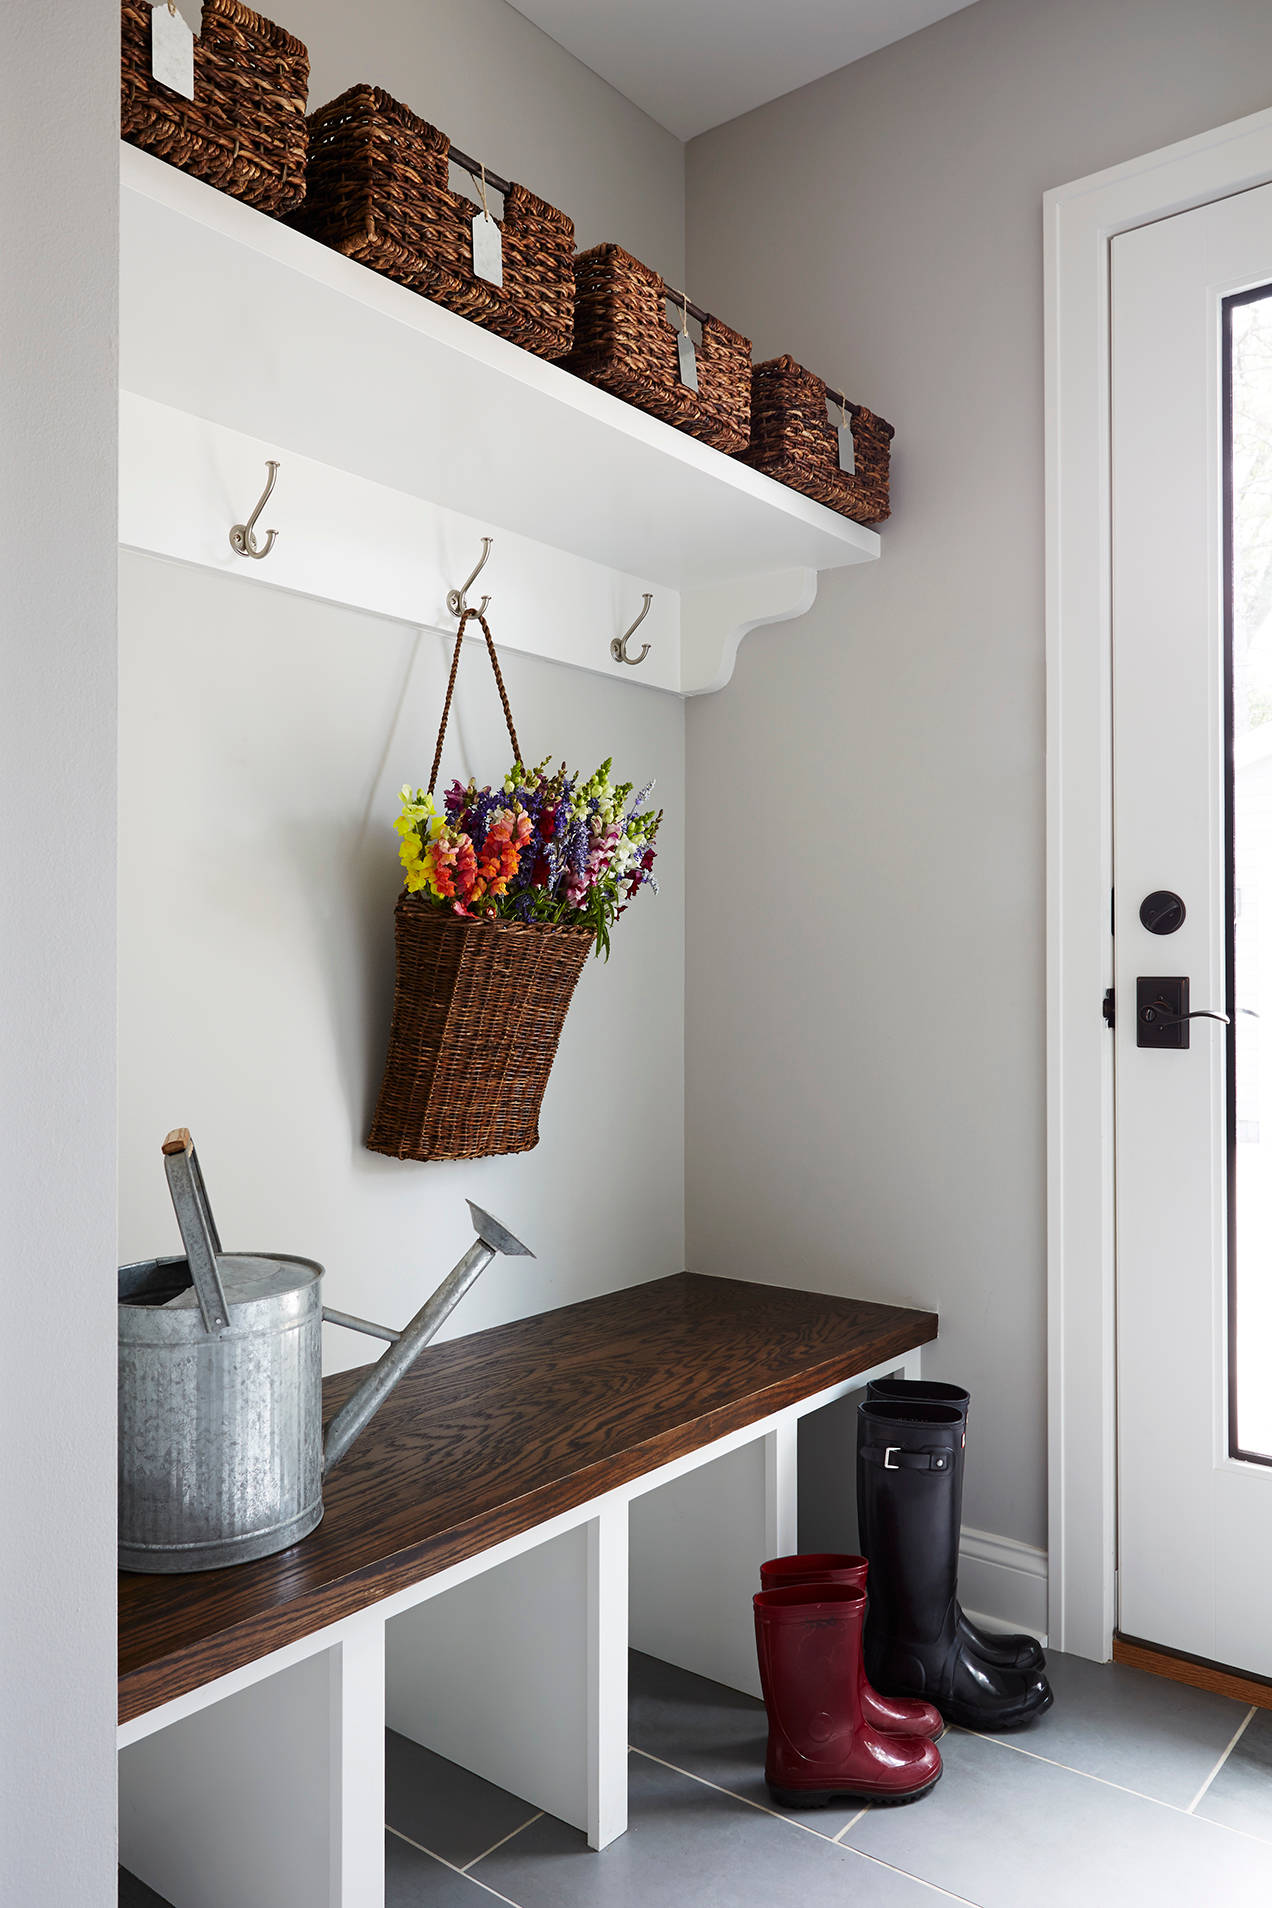 75 Beautiful Small Entryway Pictures Ideas April 2021 Houzz